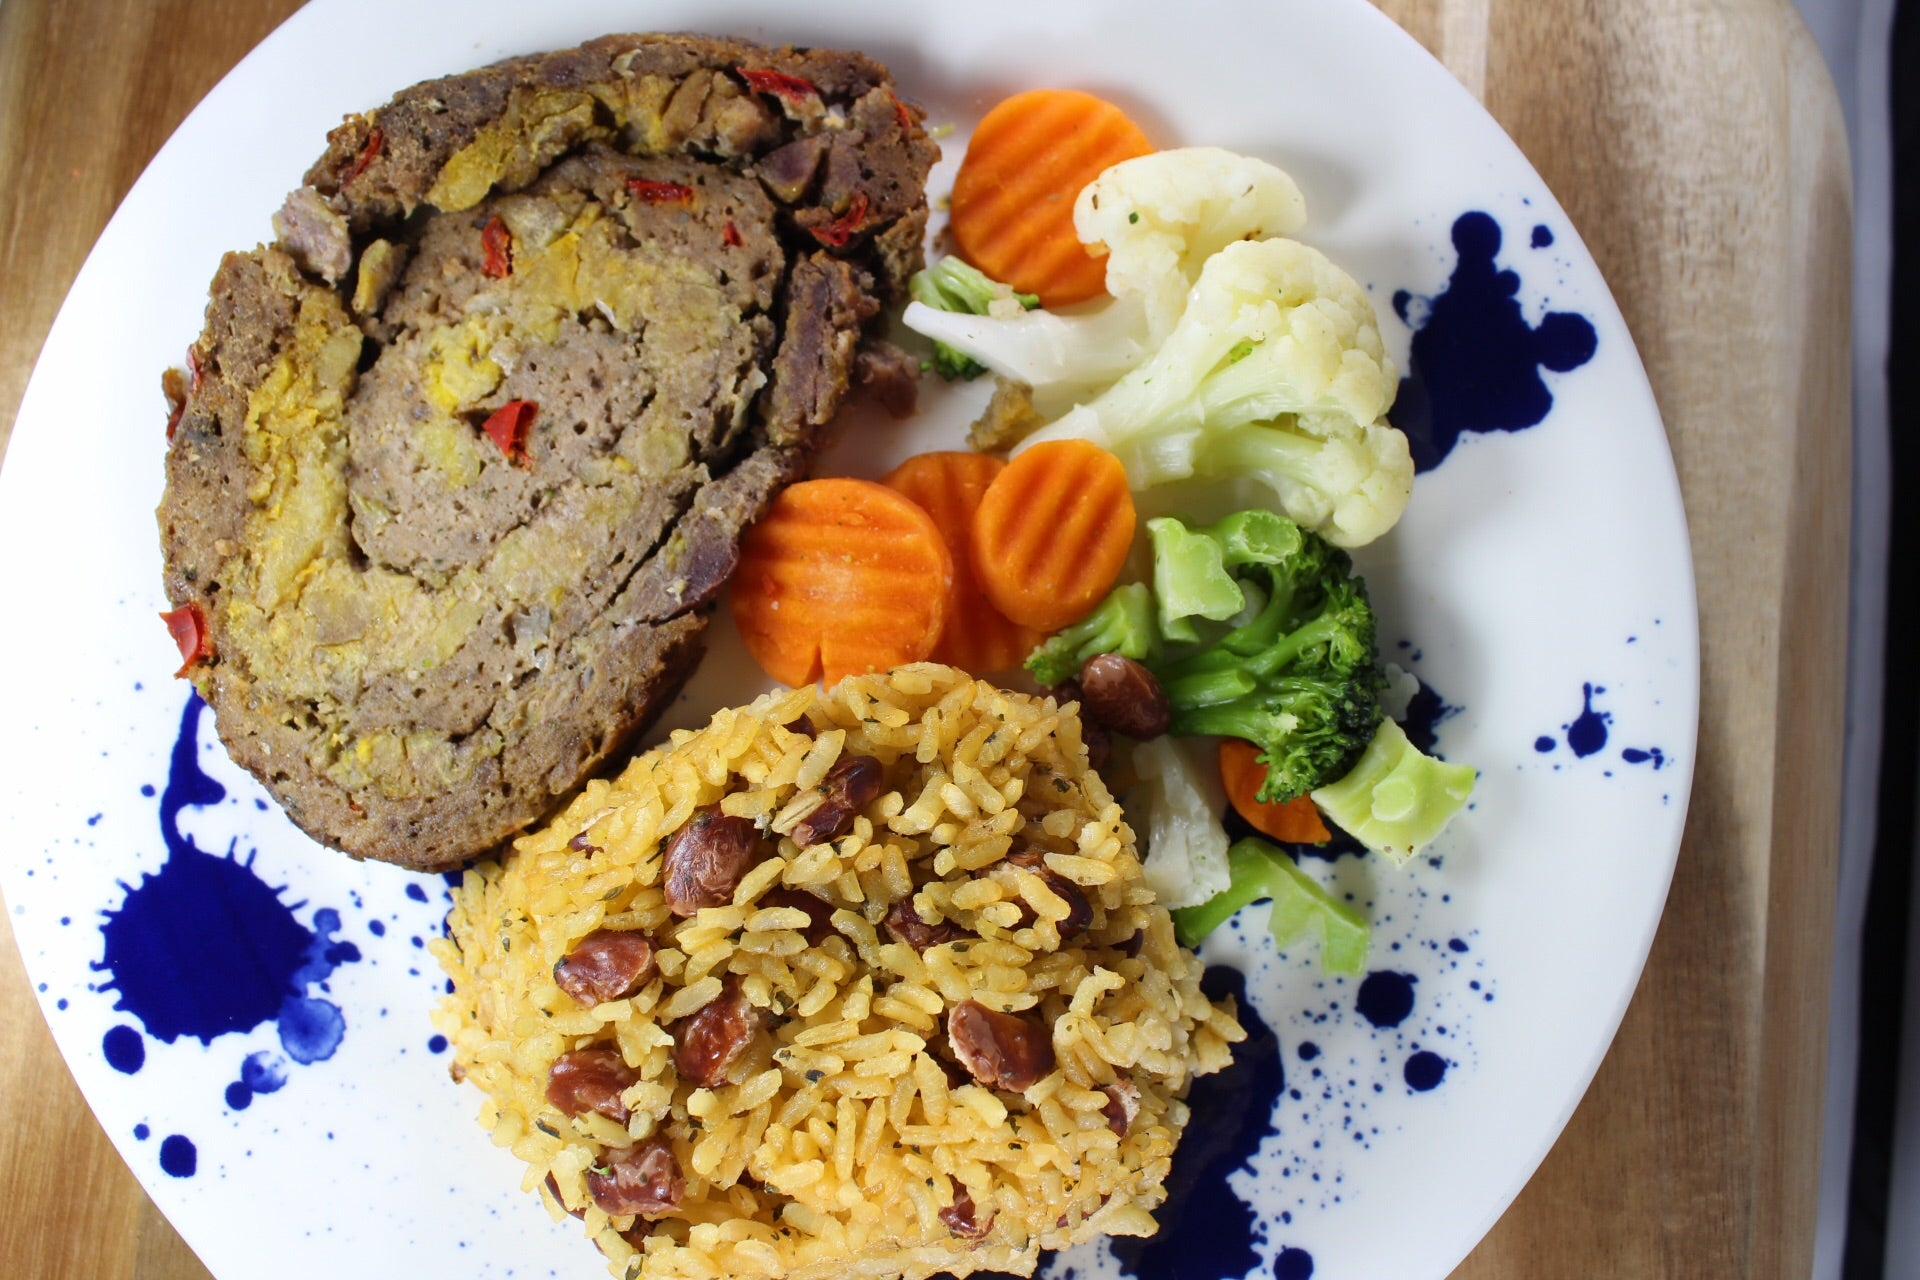 Arroz con Habichuelas y Meatloaf Relleno de Amarillo / Rice and Beans with Sweet Plantain Stuffed Meatloaf